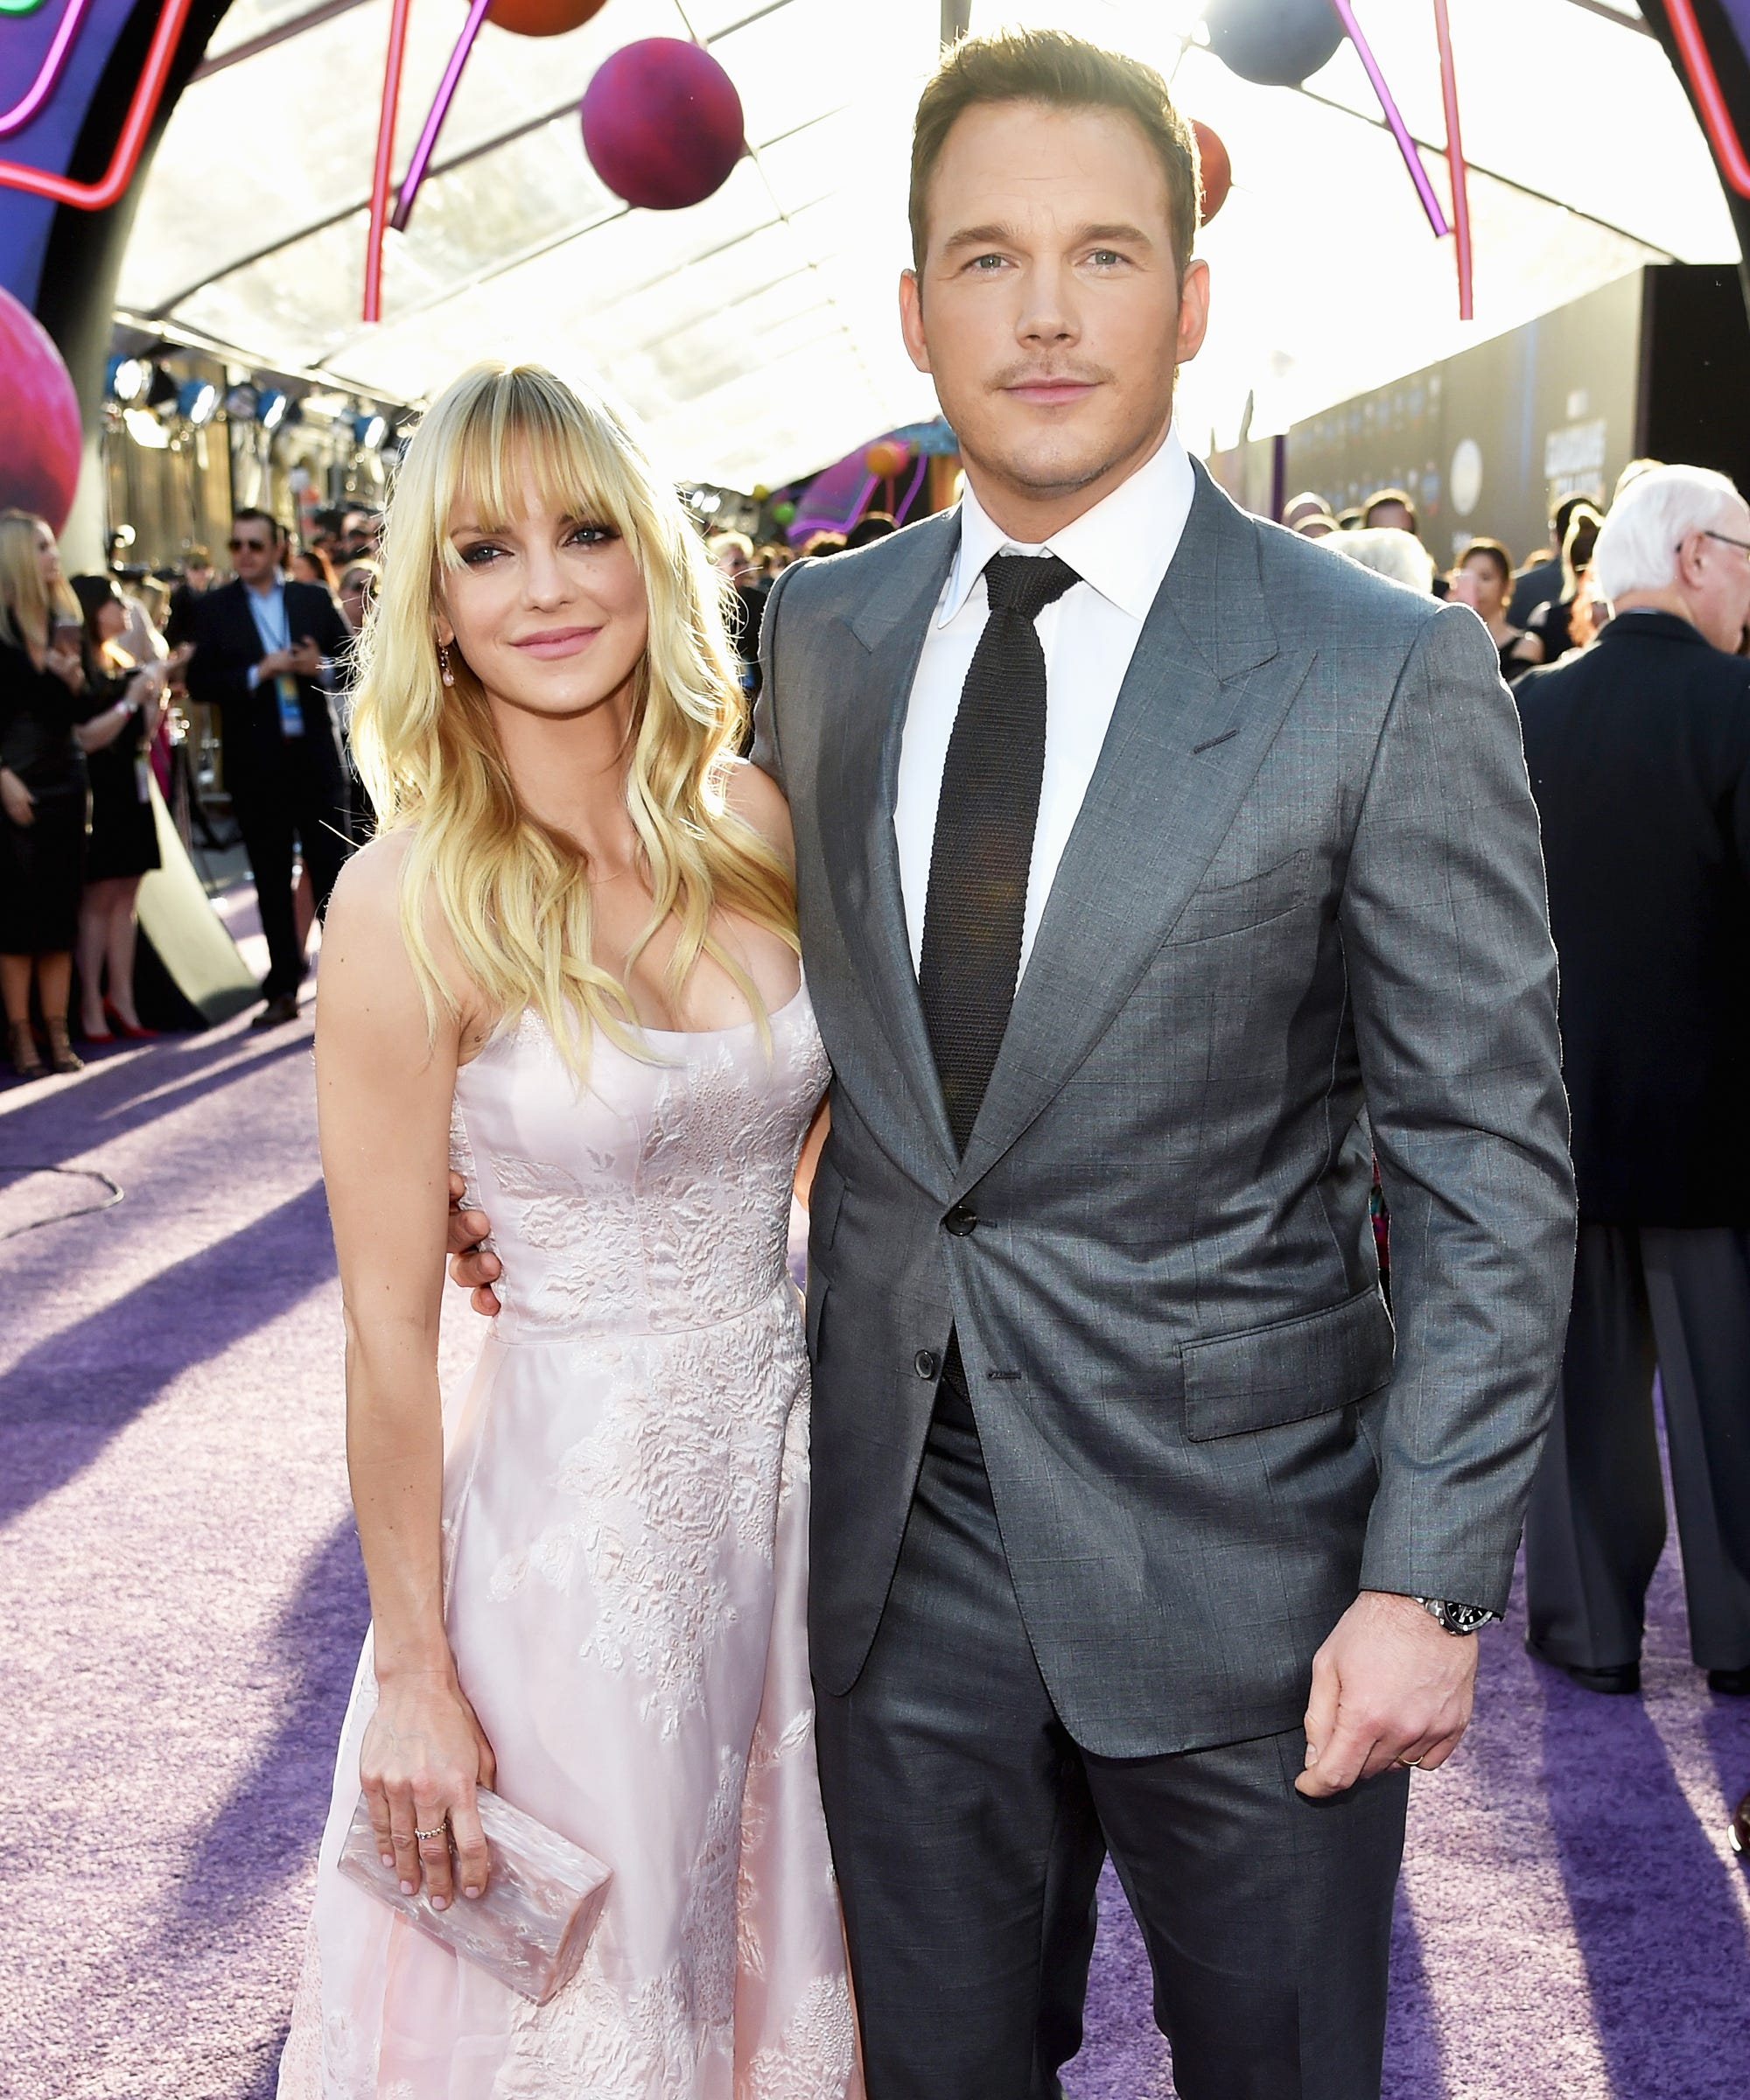 How Chris Pratt Made Sure He Didn't Blindside Anna Faris With His New Fiancée